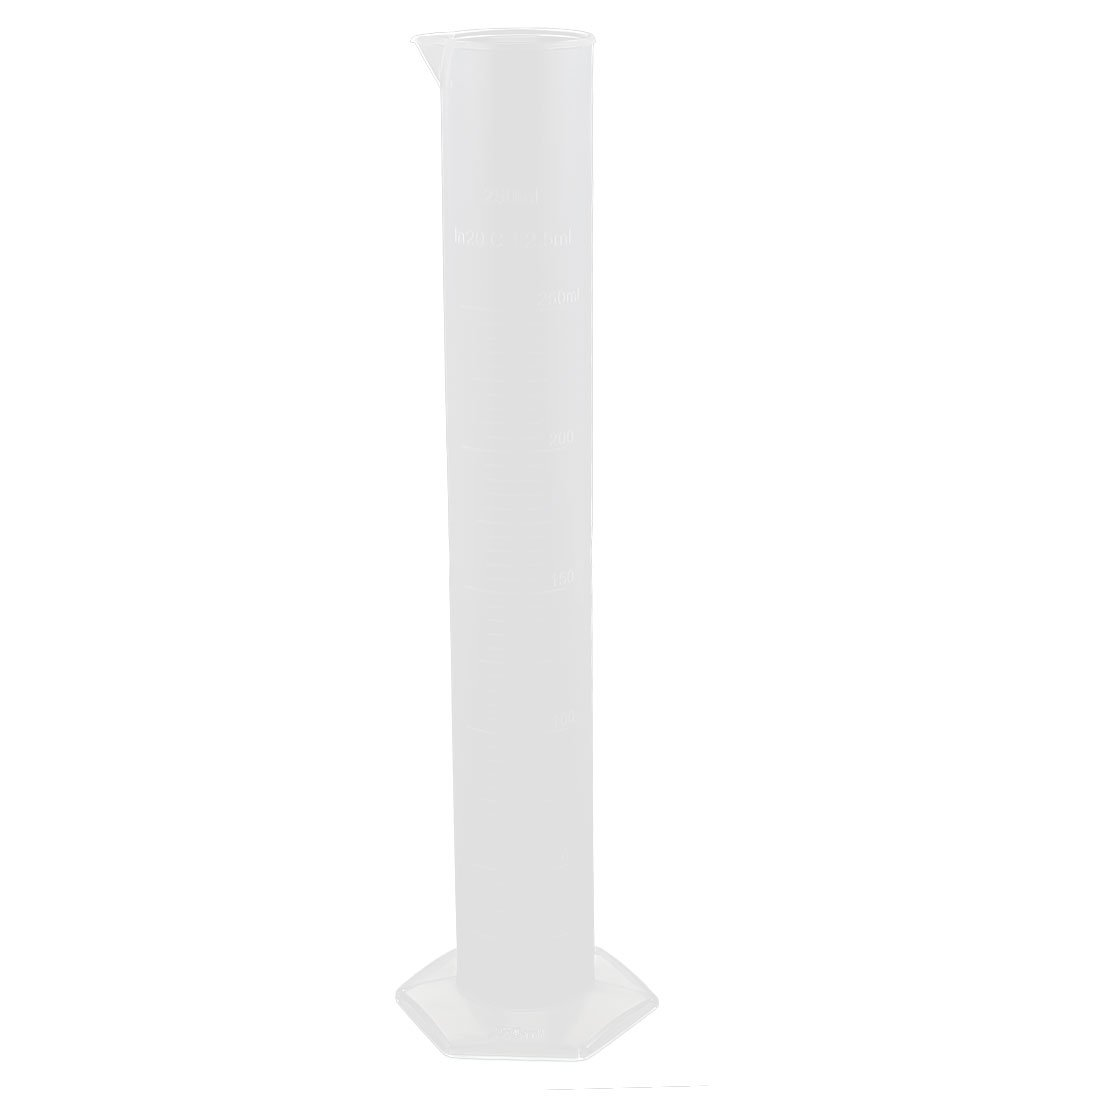 uxcell 250mL Clear Plastic Liquid Lab Measuring Tool Graduated Cylinder by uxcell